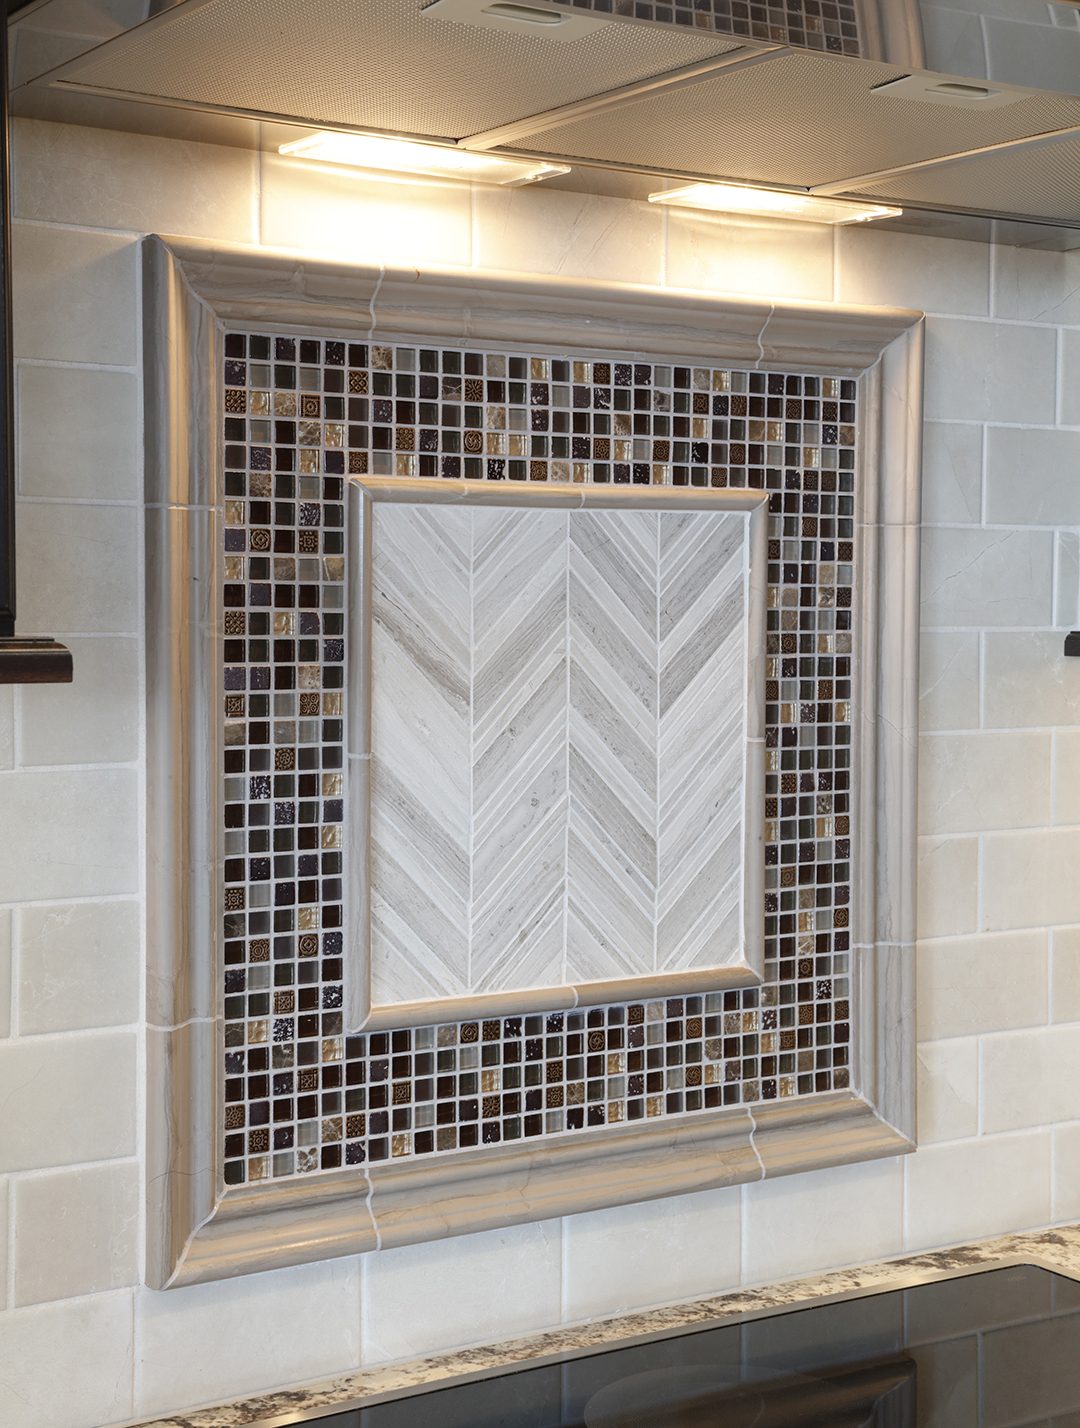 Tile inlay with decorative tiles creates dimension, interest in kitchen